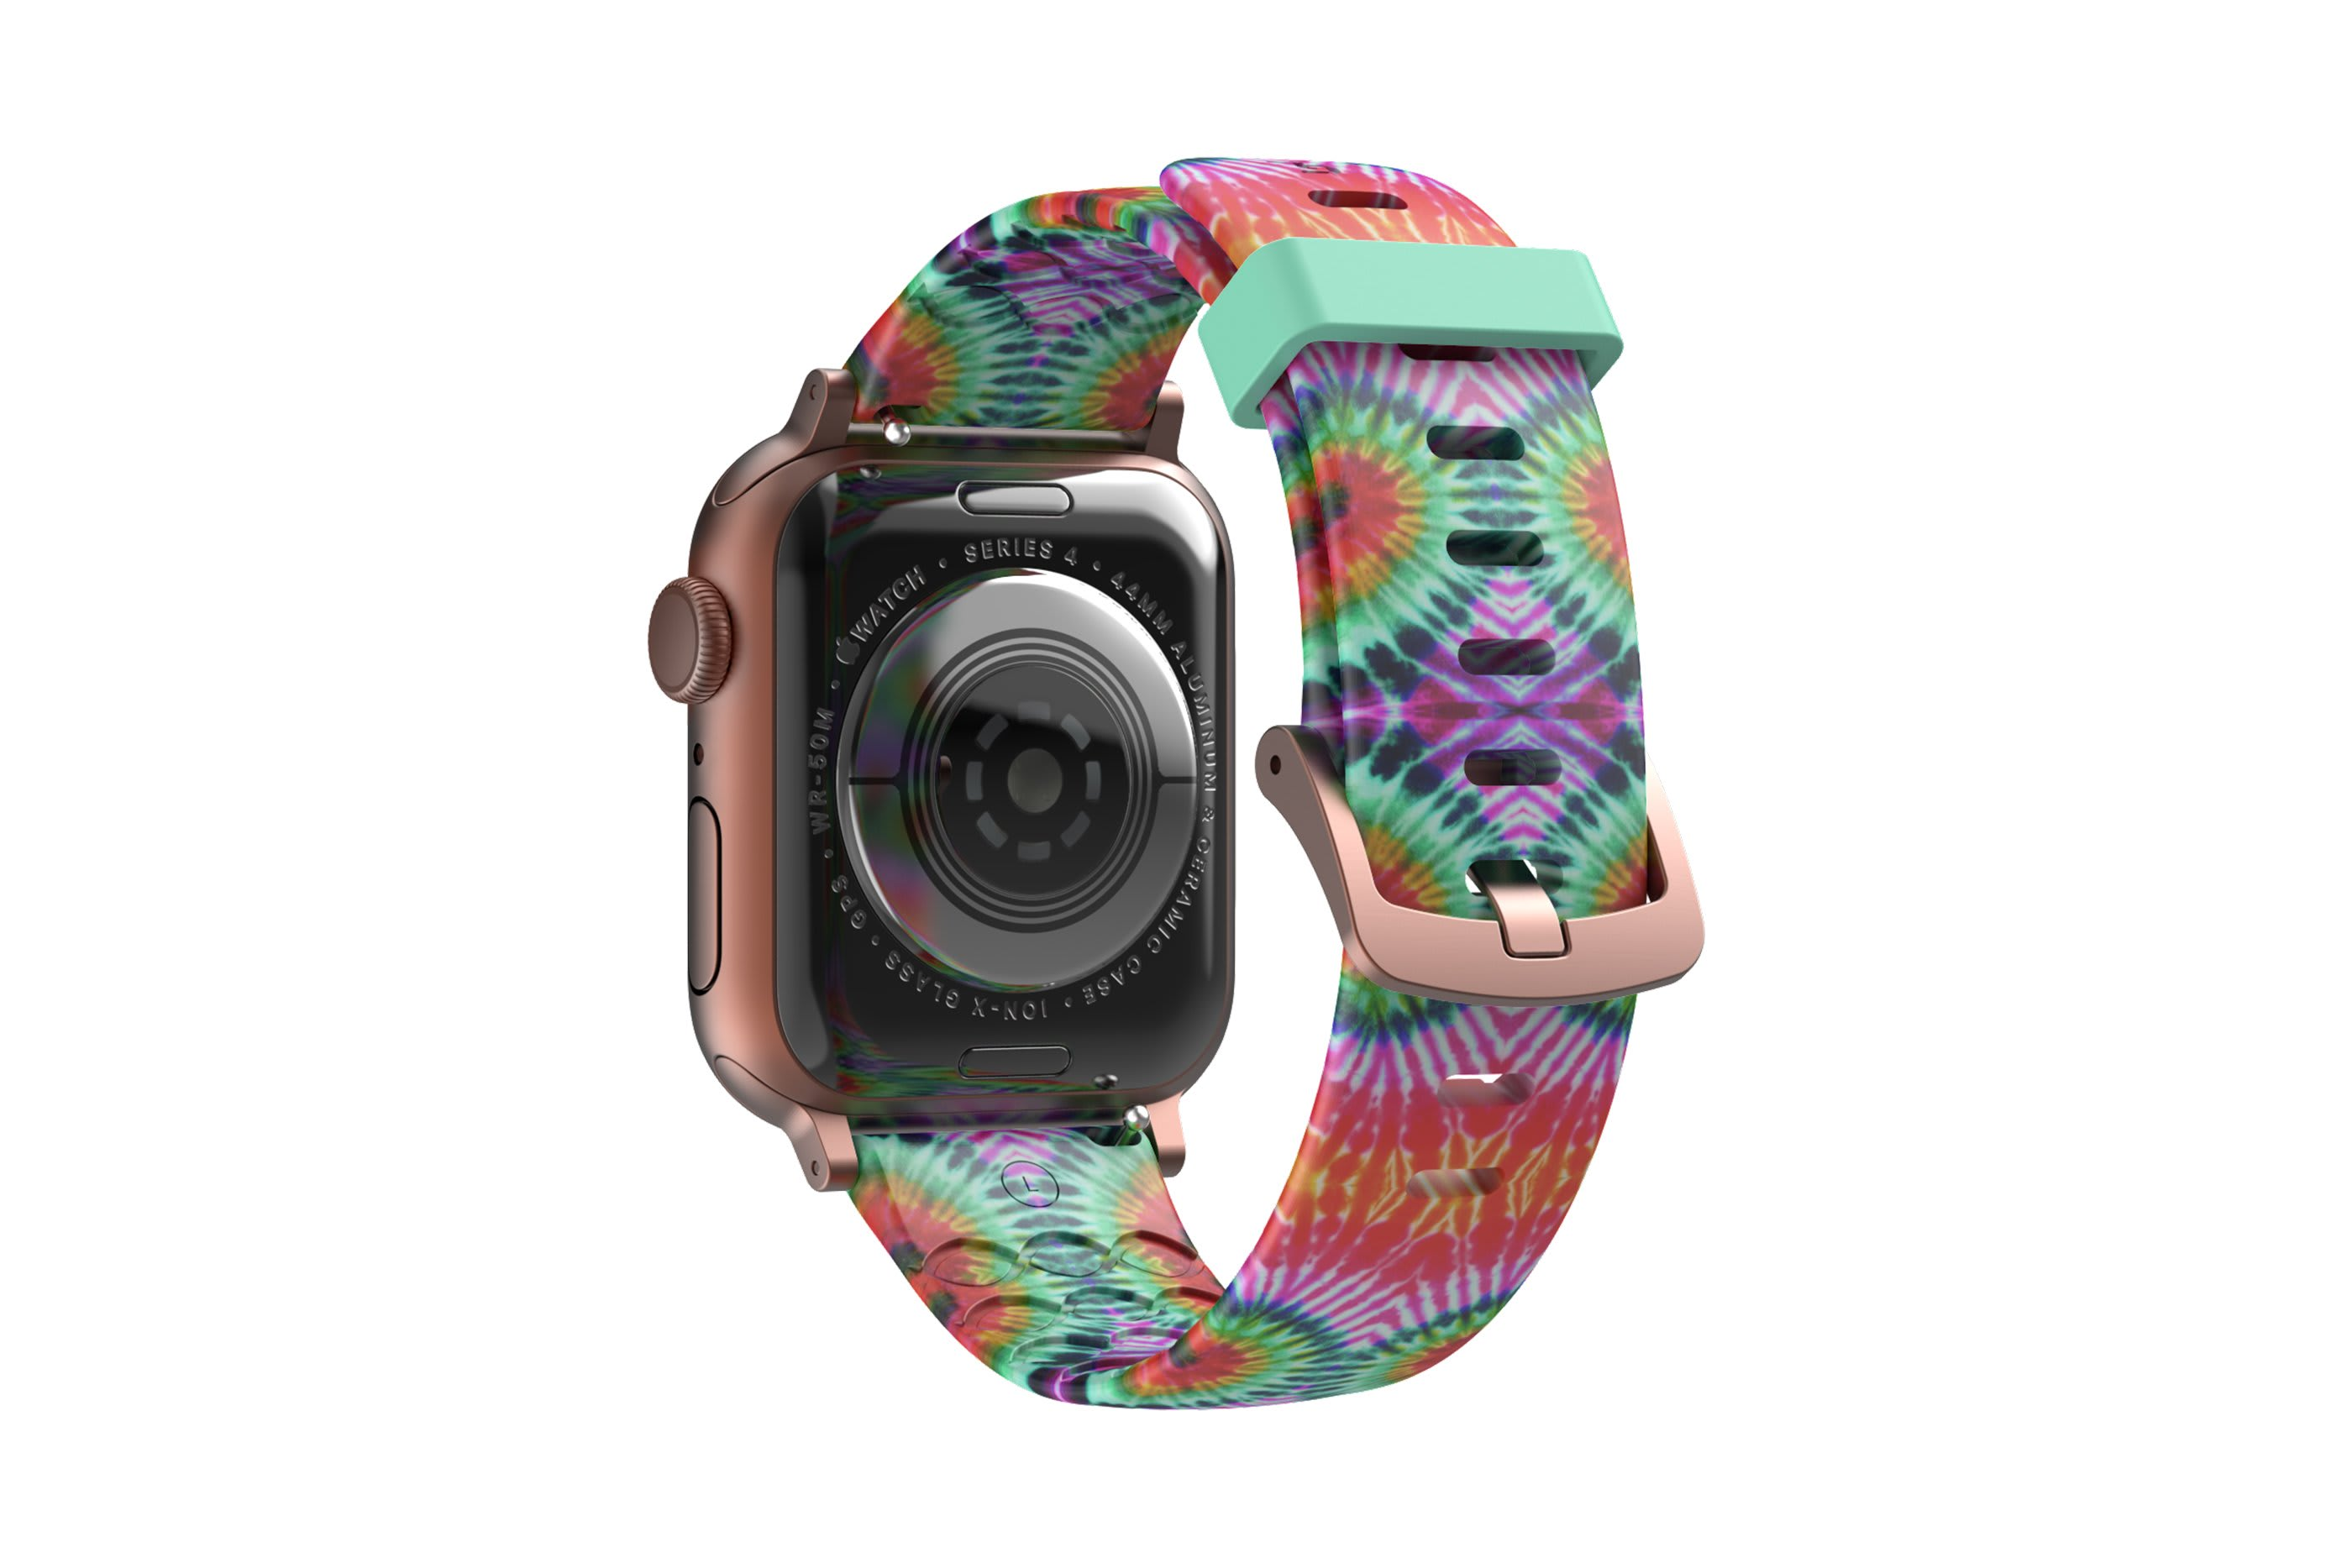 Gypsy Eyes  apple watch band with rose gold hardware viewed from top down